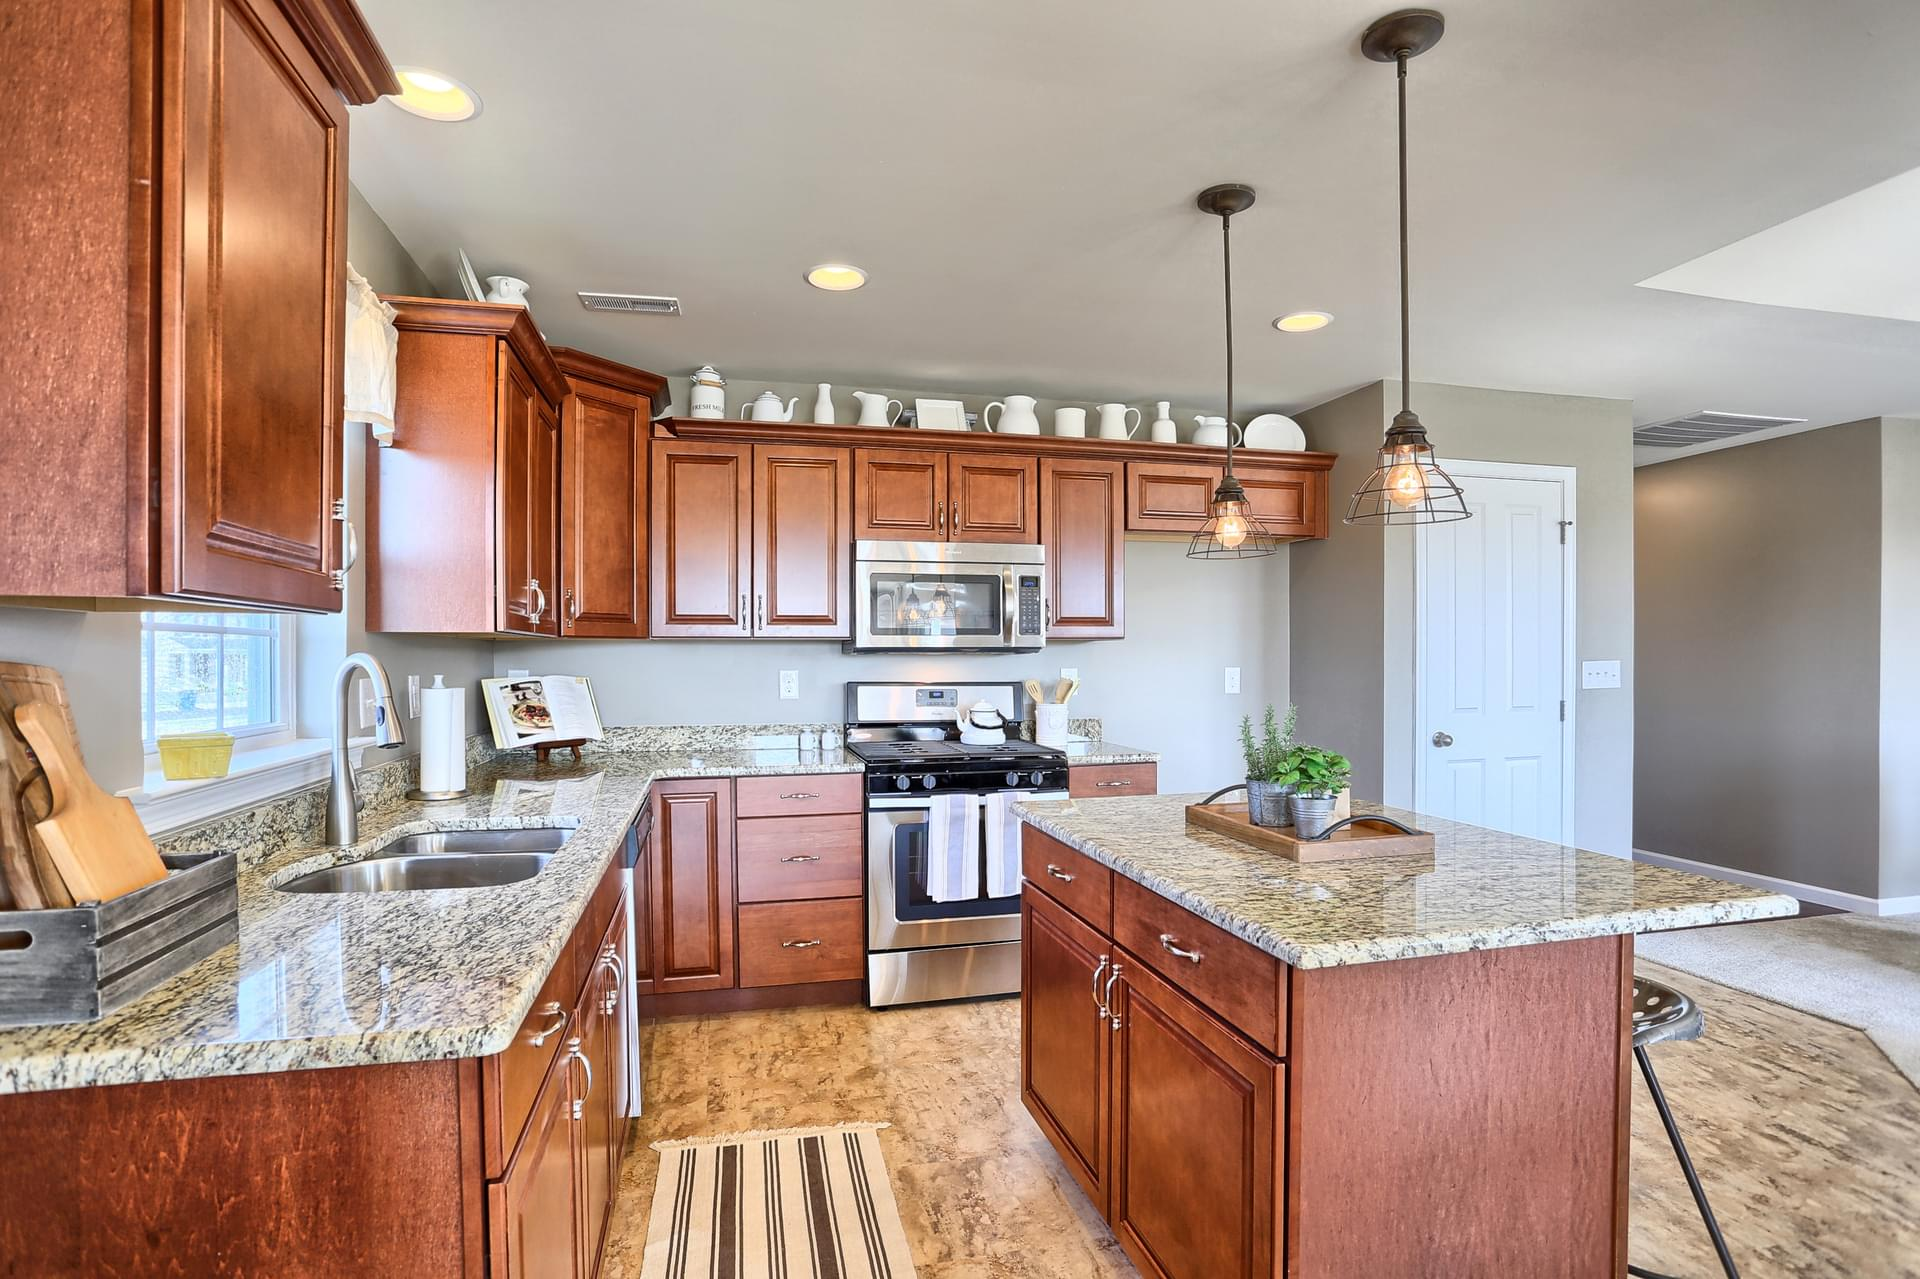 3br New Home in Mechanicsburg, PA